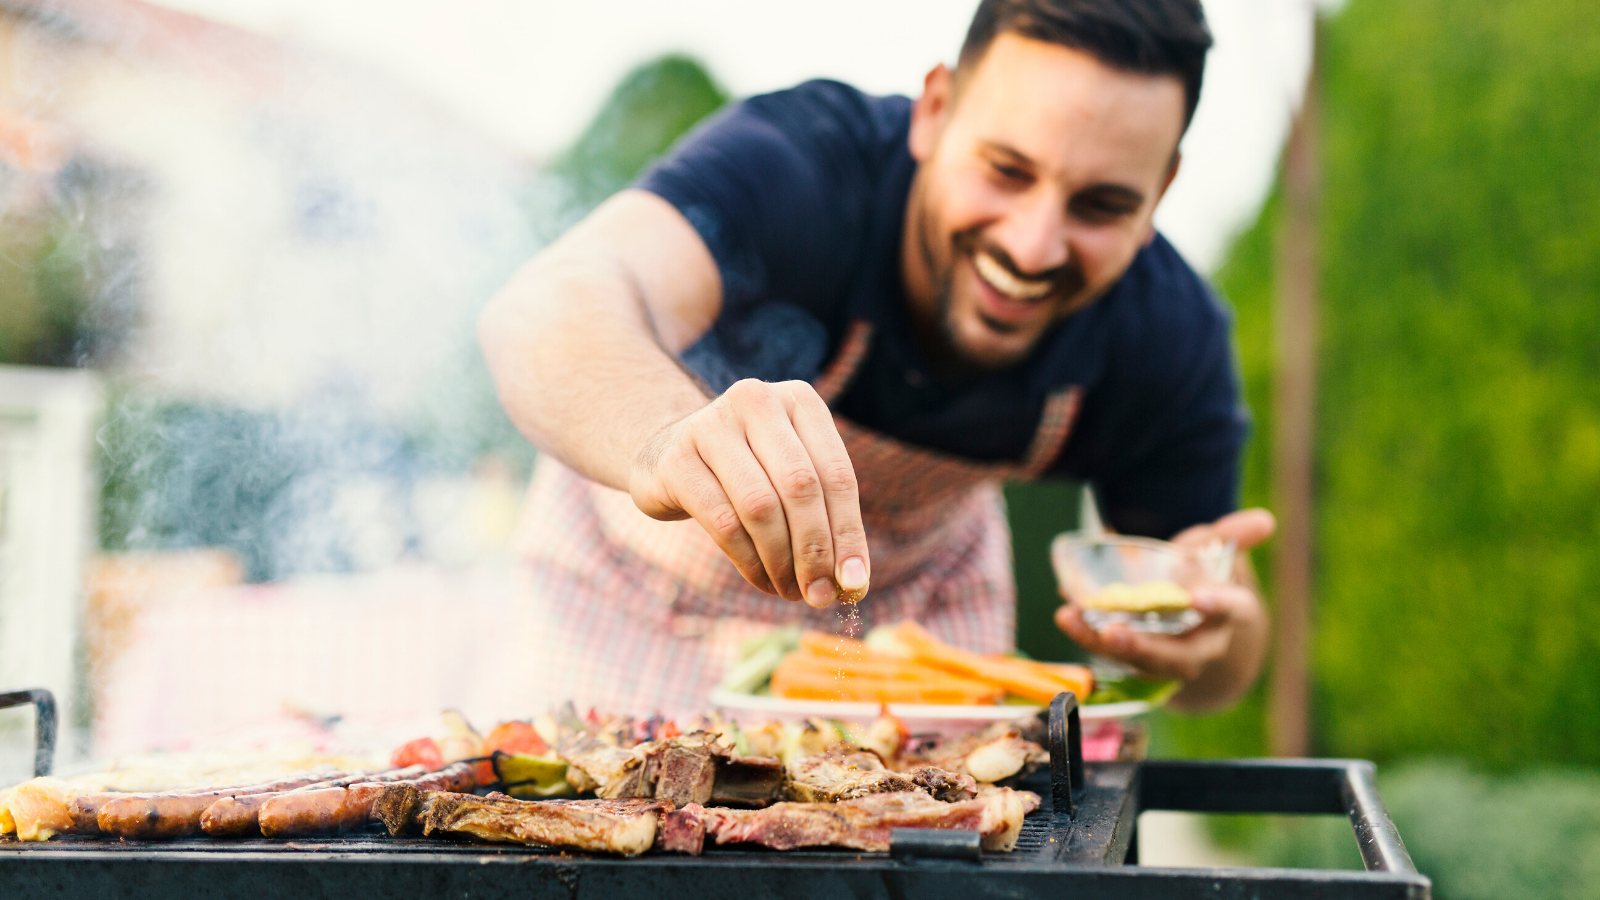 8 Grilling Hacks to Help You Turn Up the Heat - featured 2